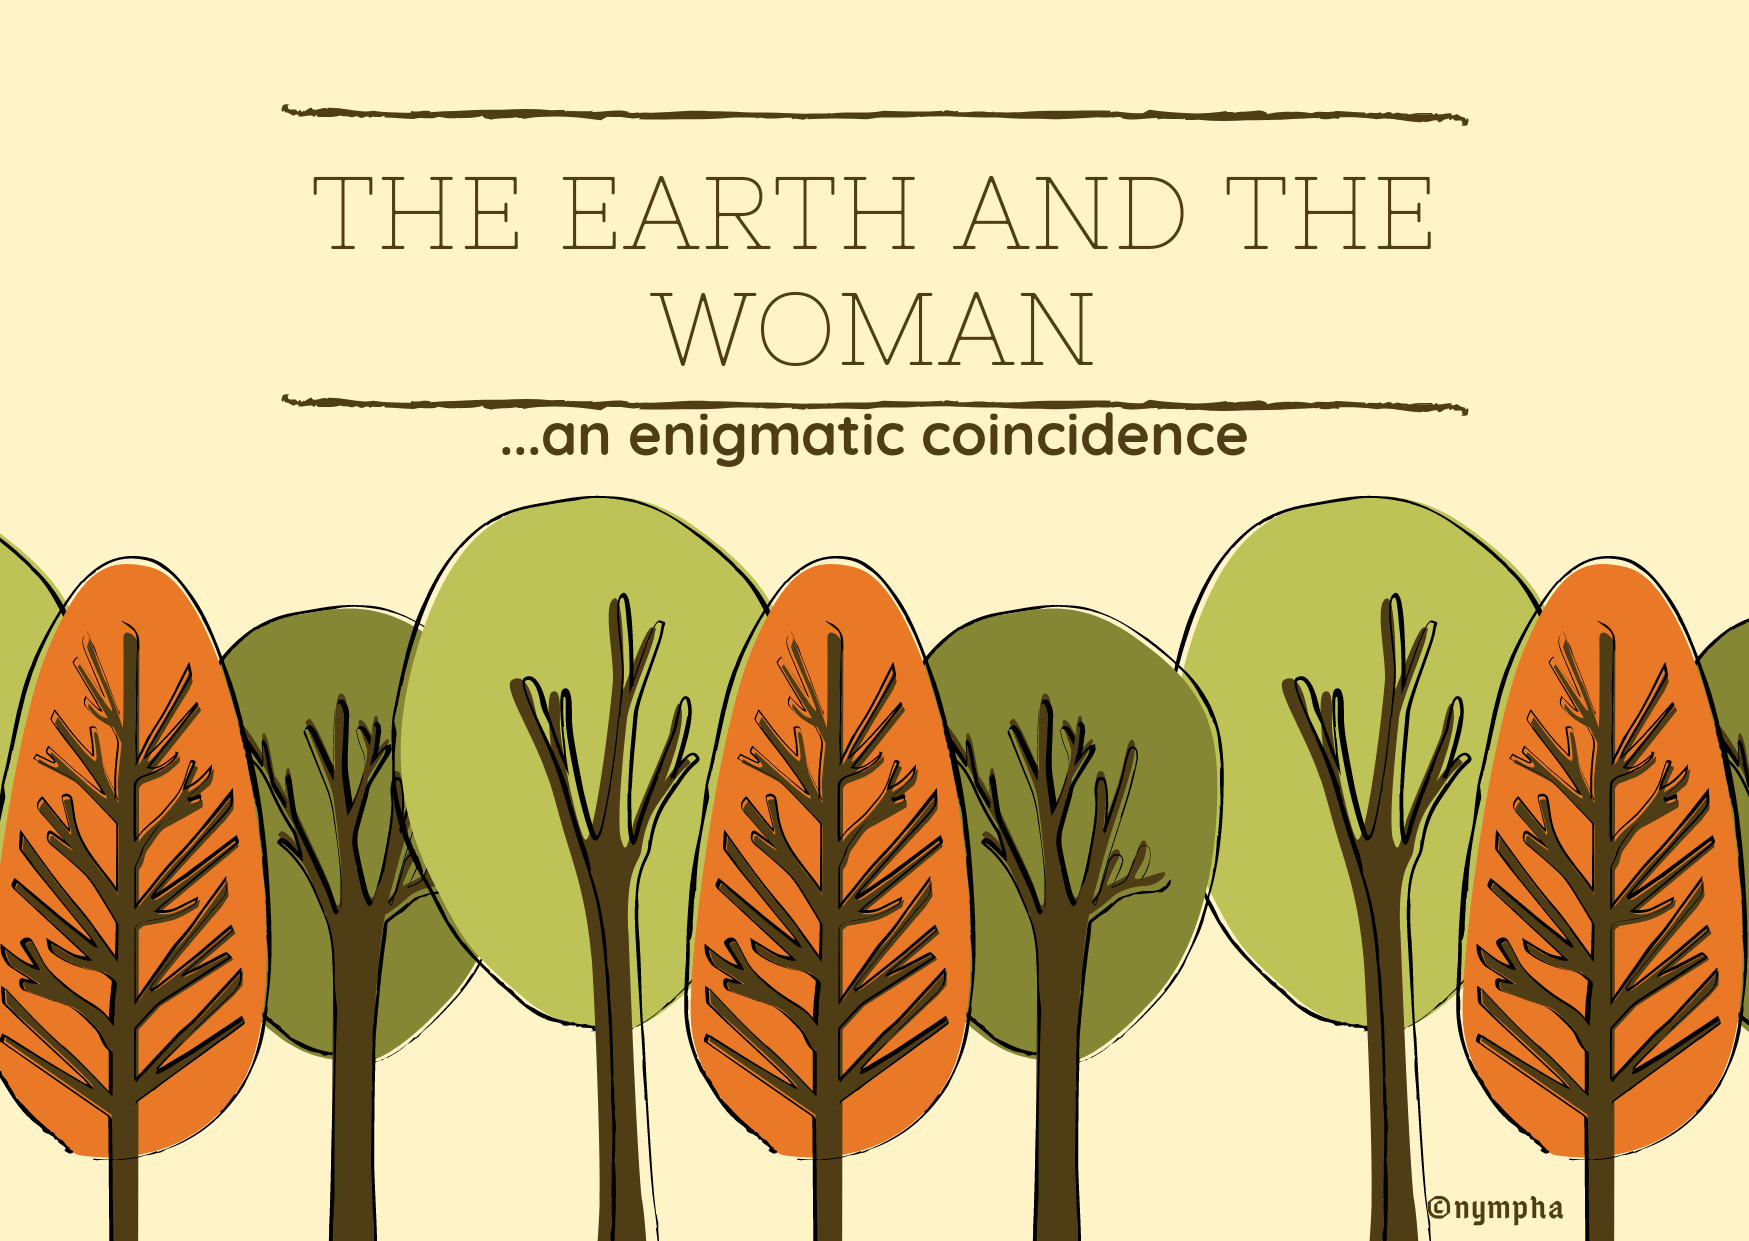 The earth and the woman